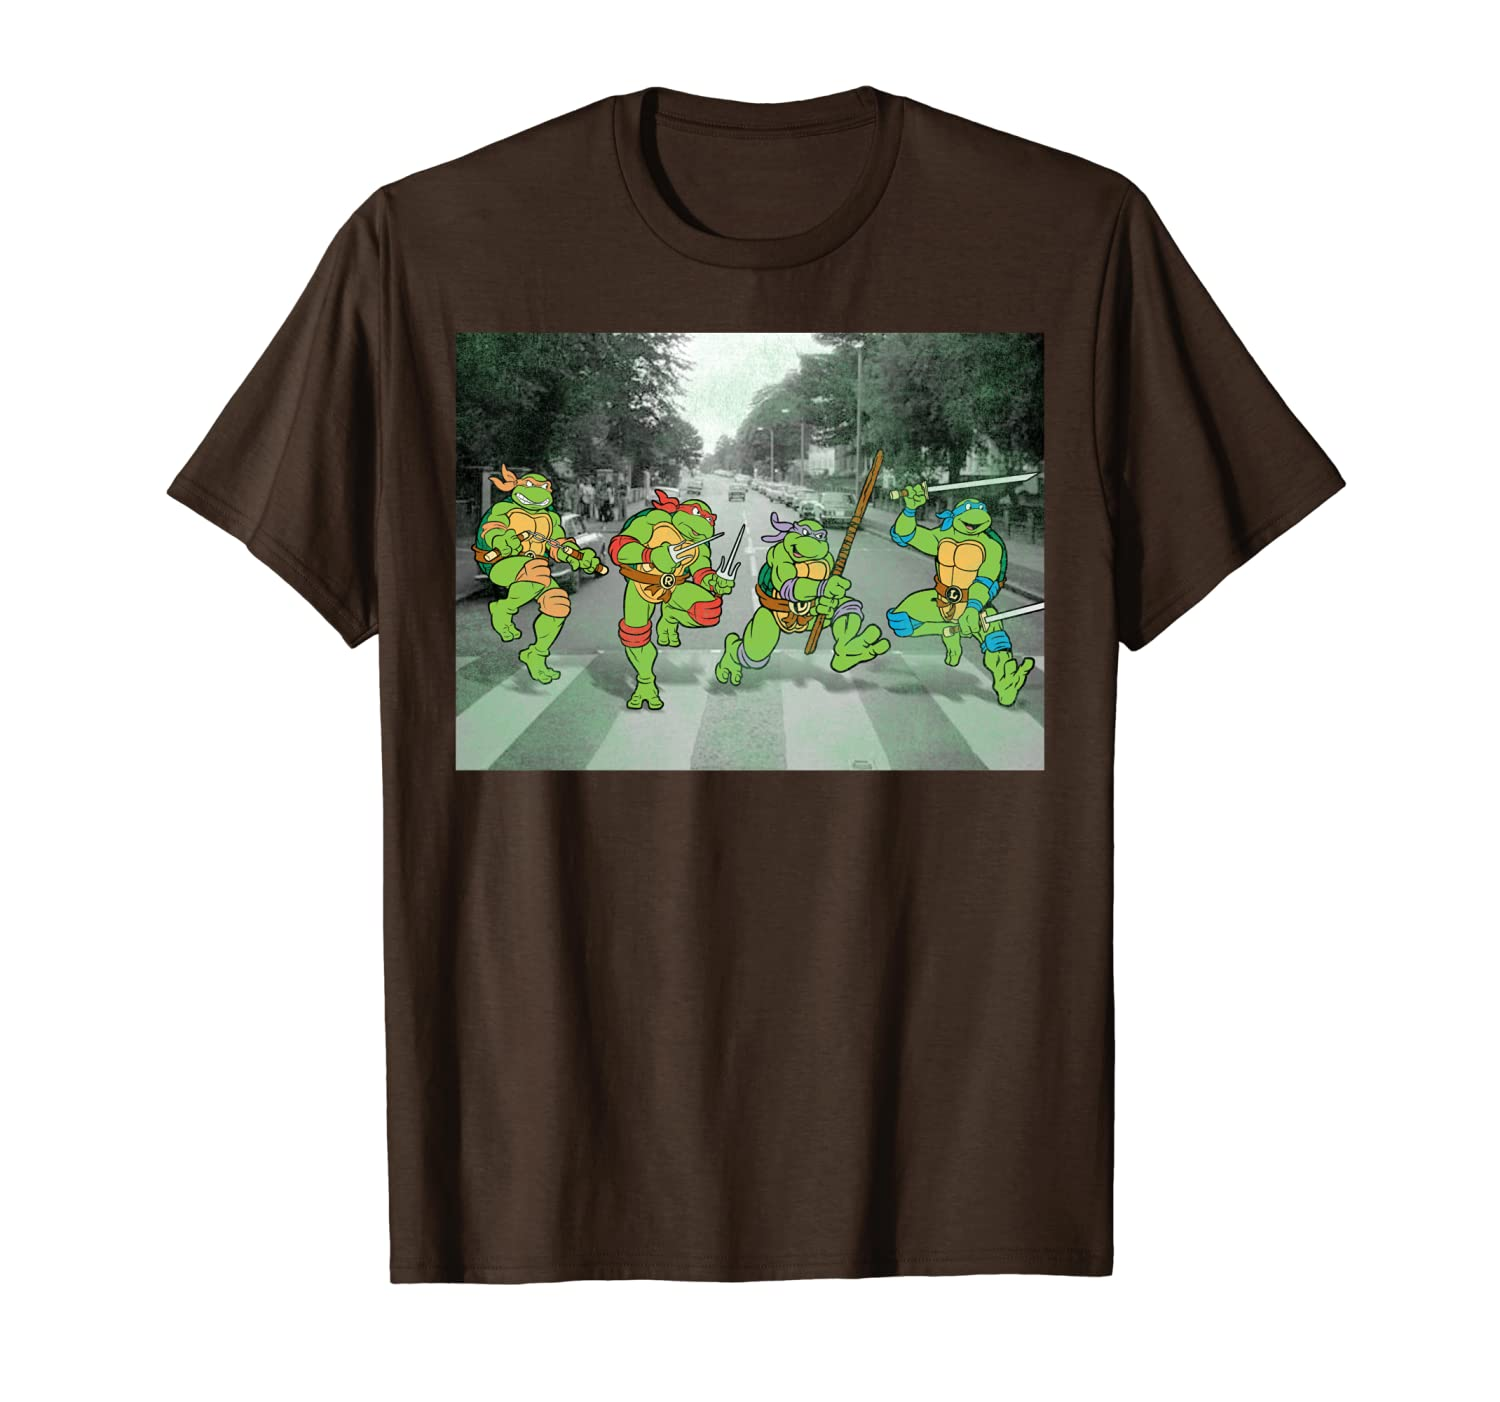 Teenage Mutant Ninja Turtles Road Crossing Parody T-Shirt